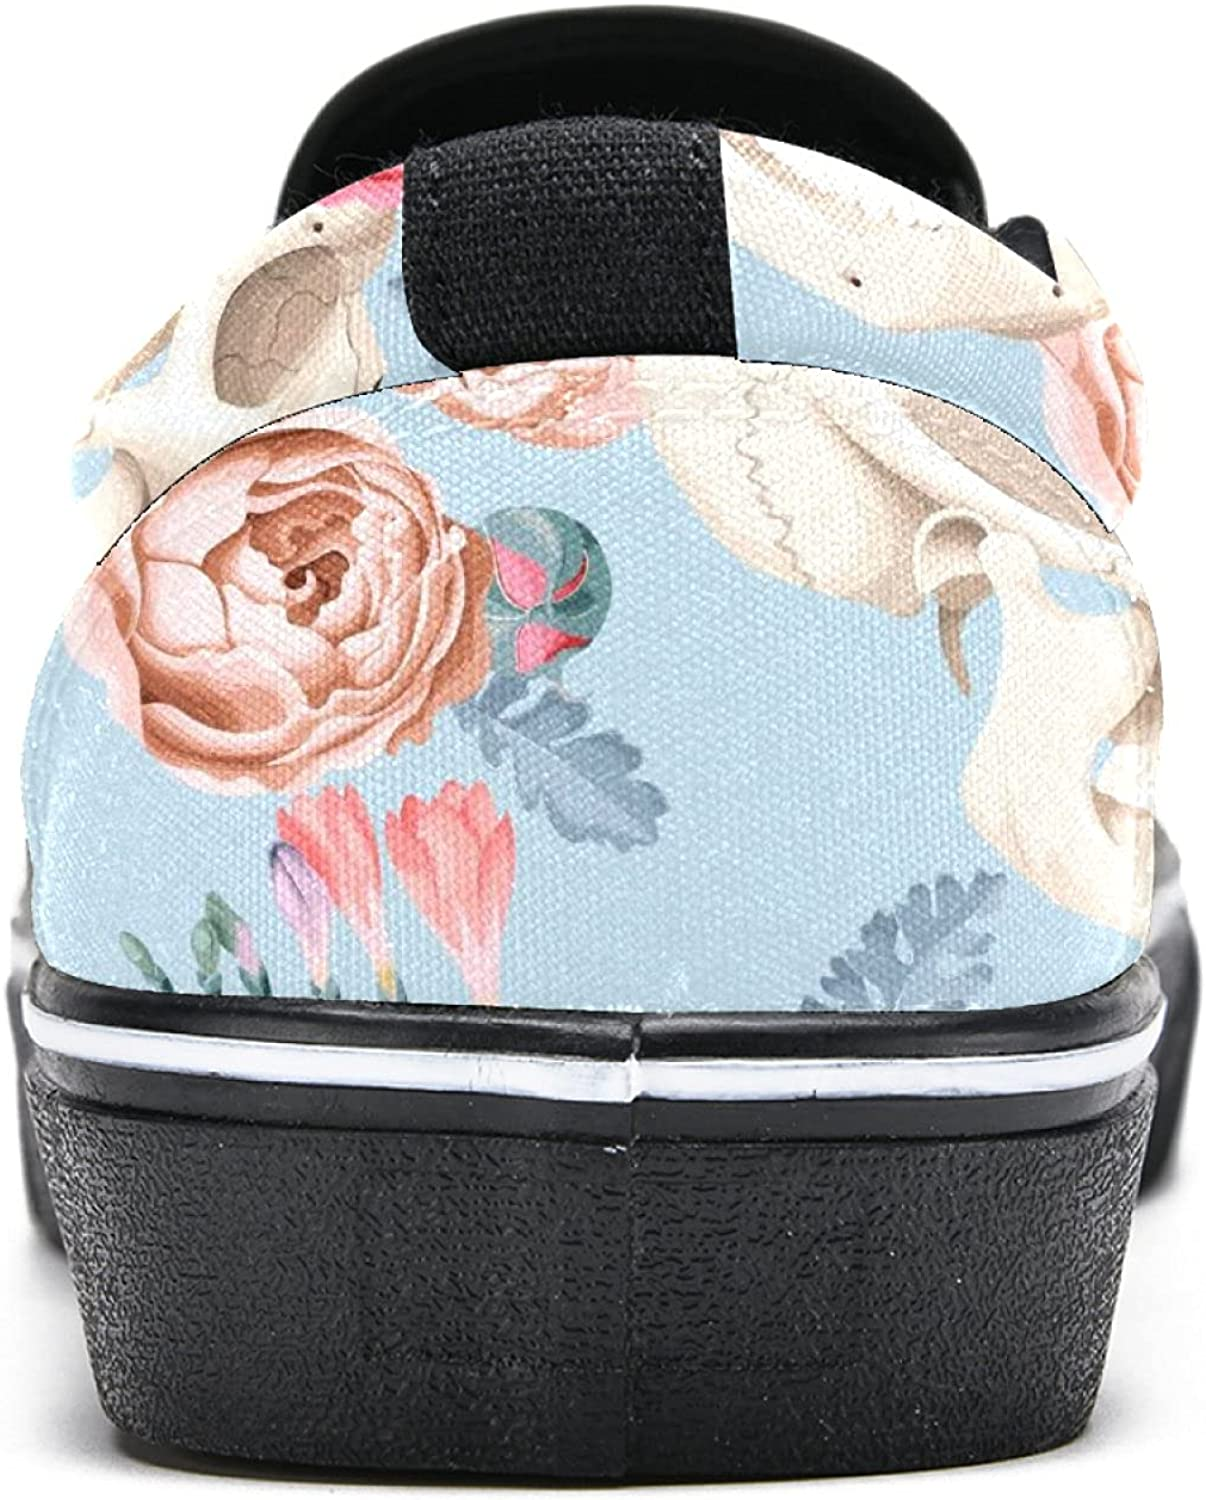 Men's Classic Slip-on Canvas Shoe Fashion Sneaker Casual Walking Shoes Loafers 5.5 Skulls and Roses Pattern